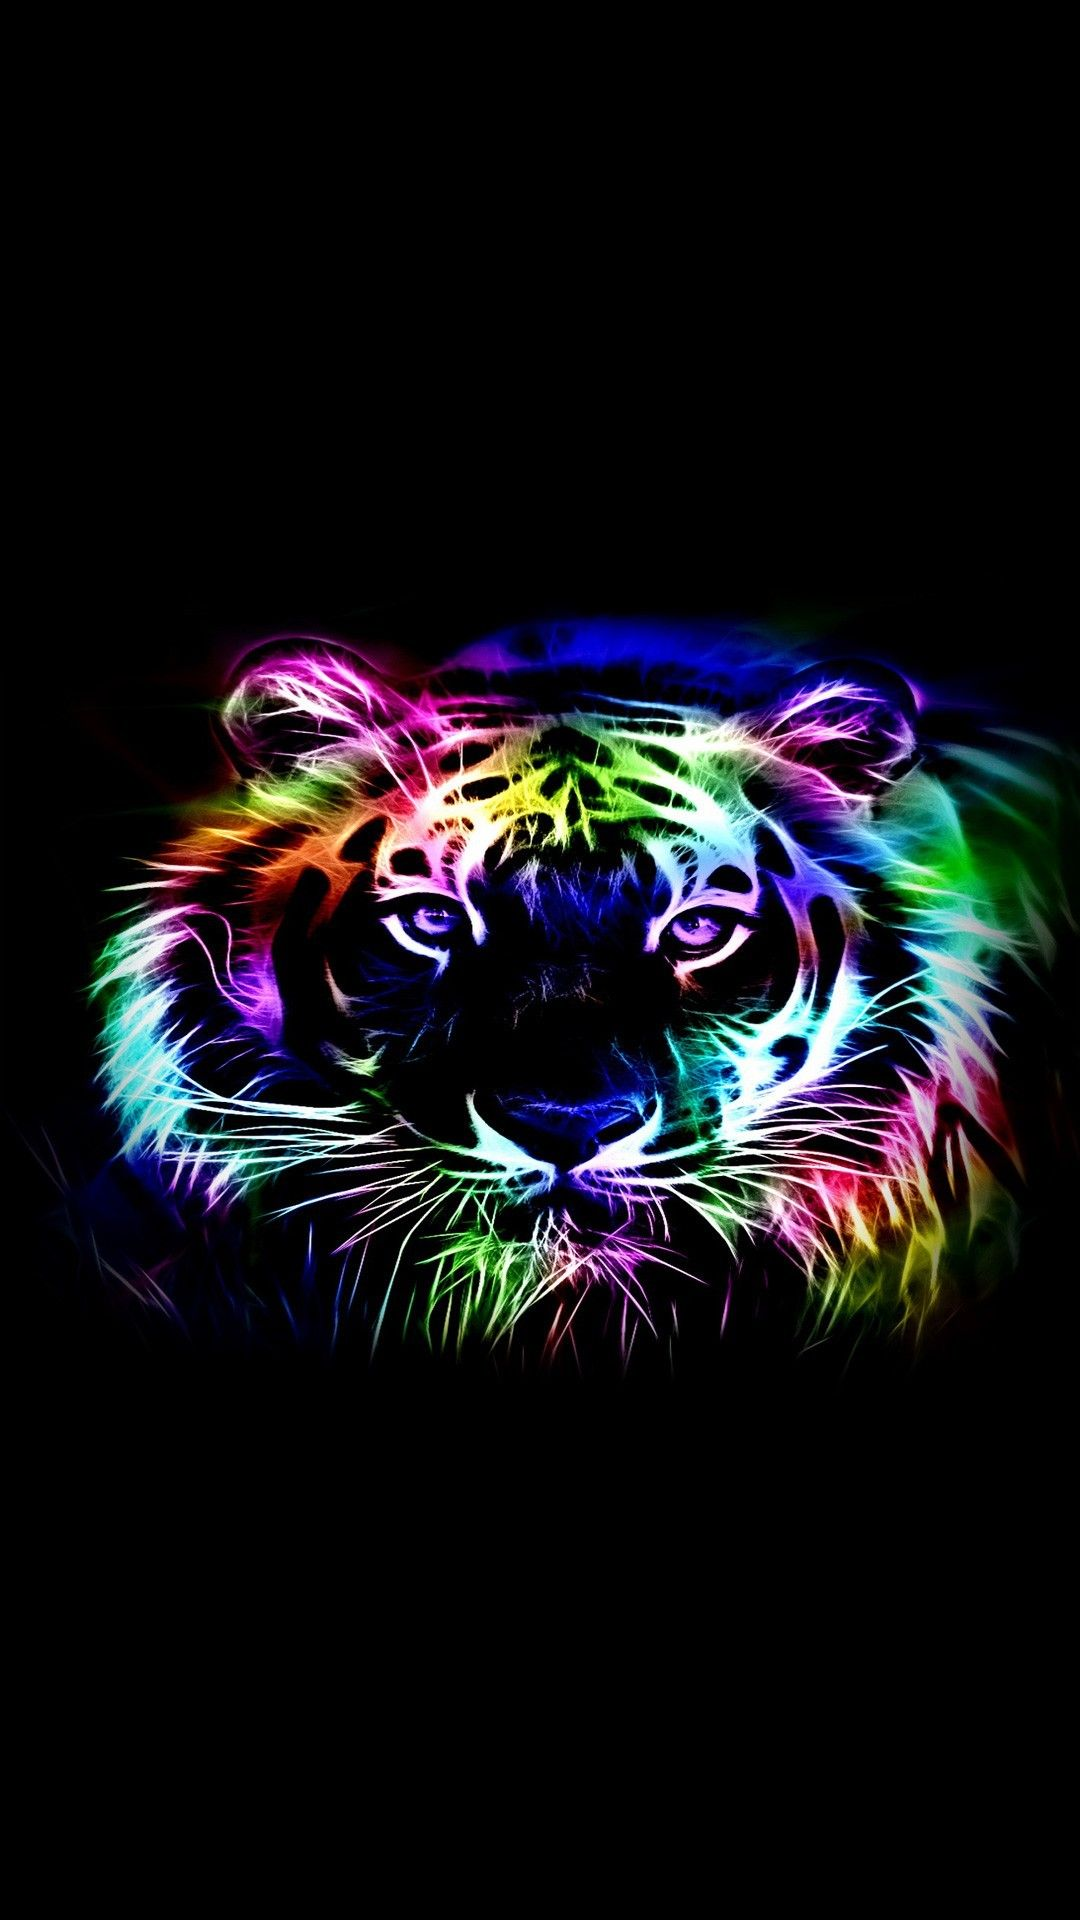 Hello kitty on a motorcycle digital art file name neon tiger hello kitty on a motorcycle digital art file name neon tiger outline digital art mobile wallpaper 1080x1920 altavistaventures